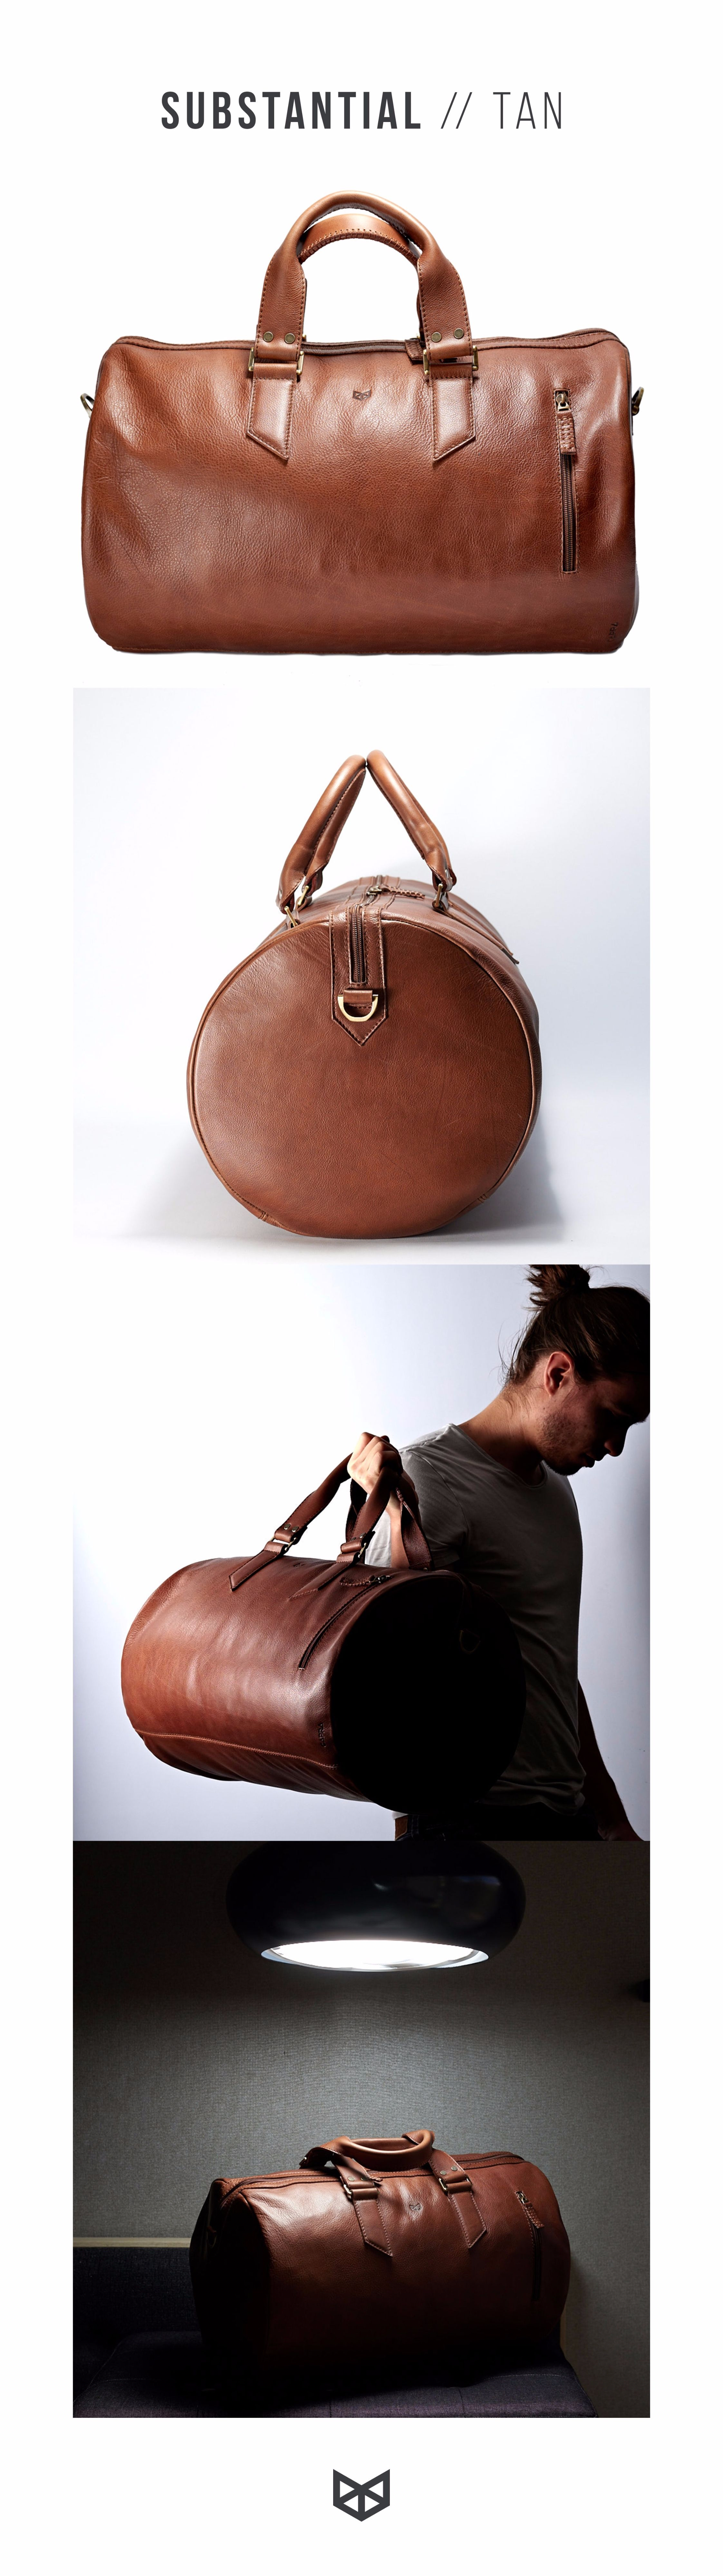 caa37811610a Substantial Leather Duffle Bag in Tan leather. Made from full grain leather  and cotton lining